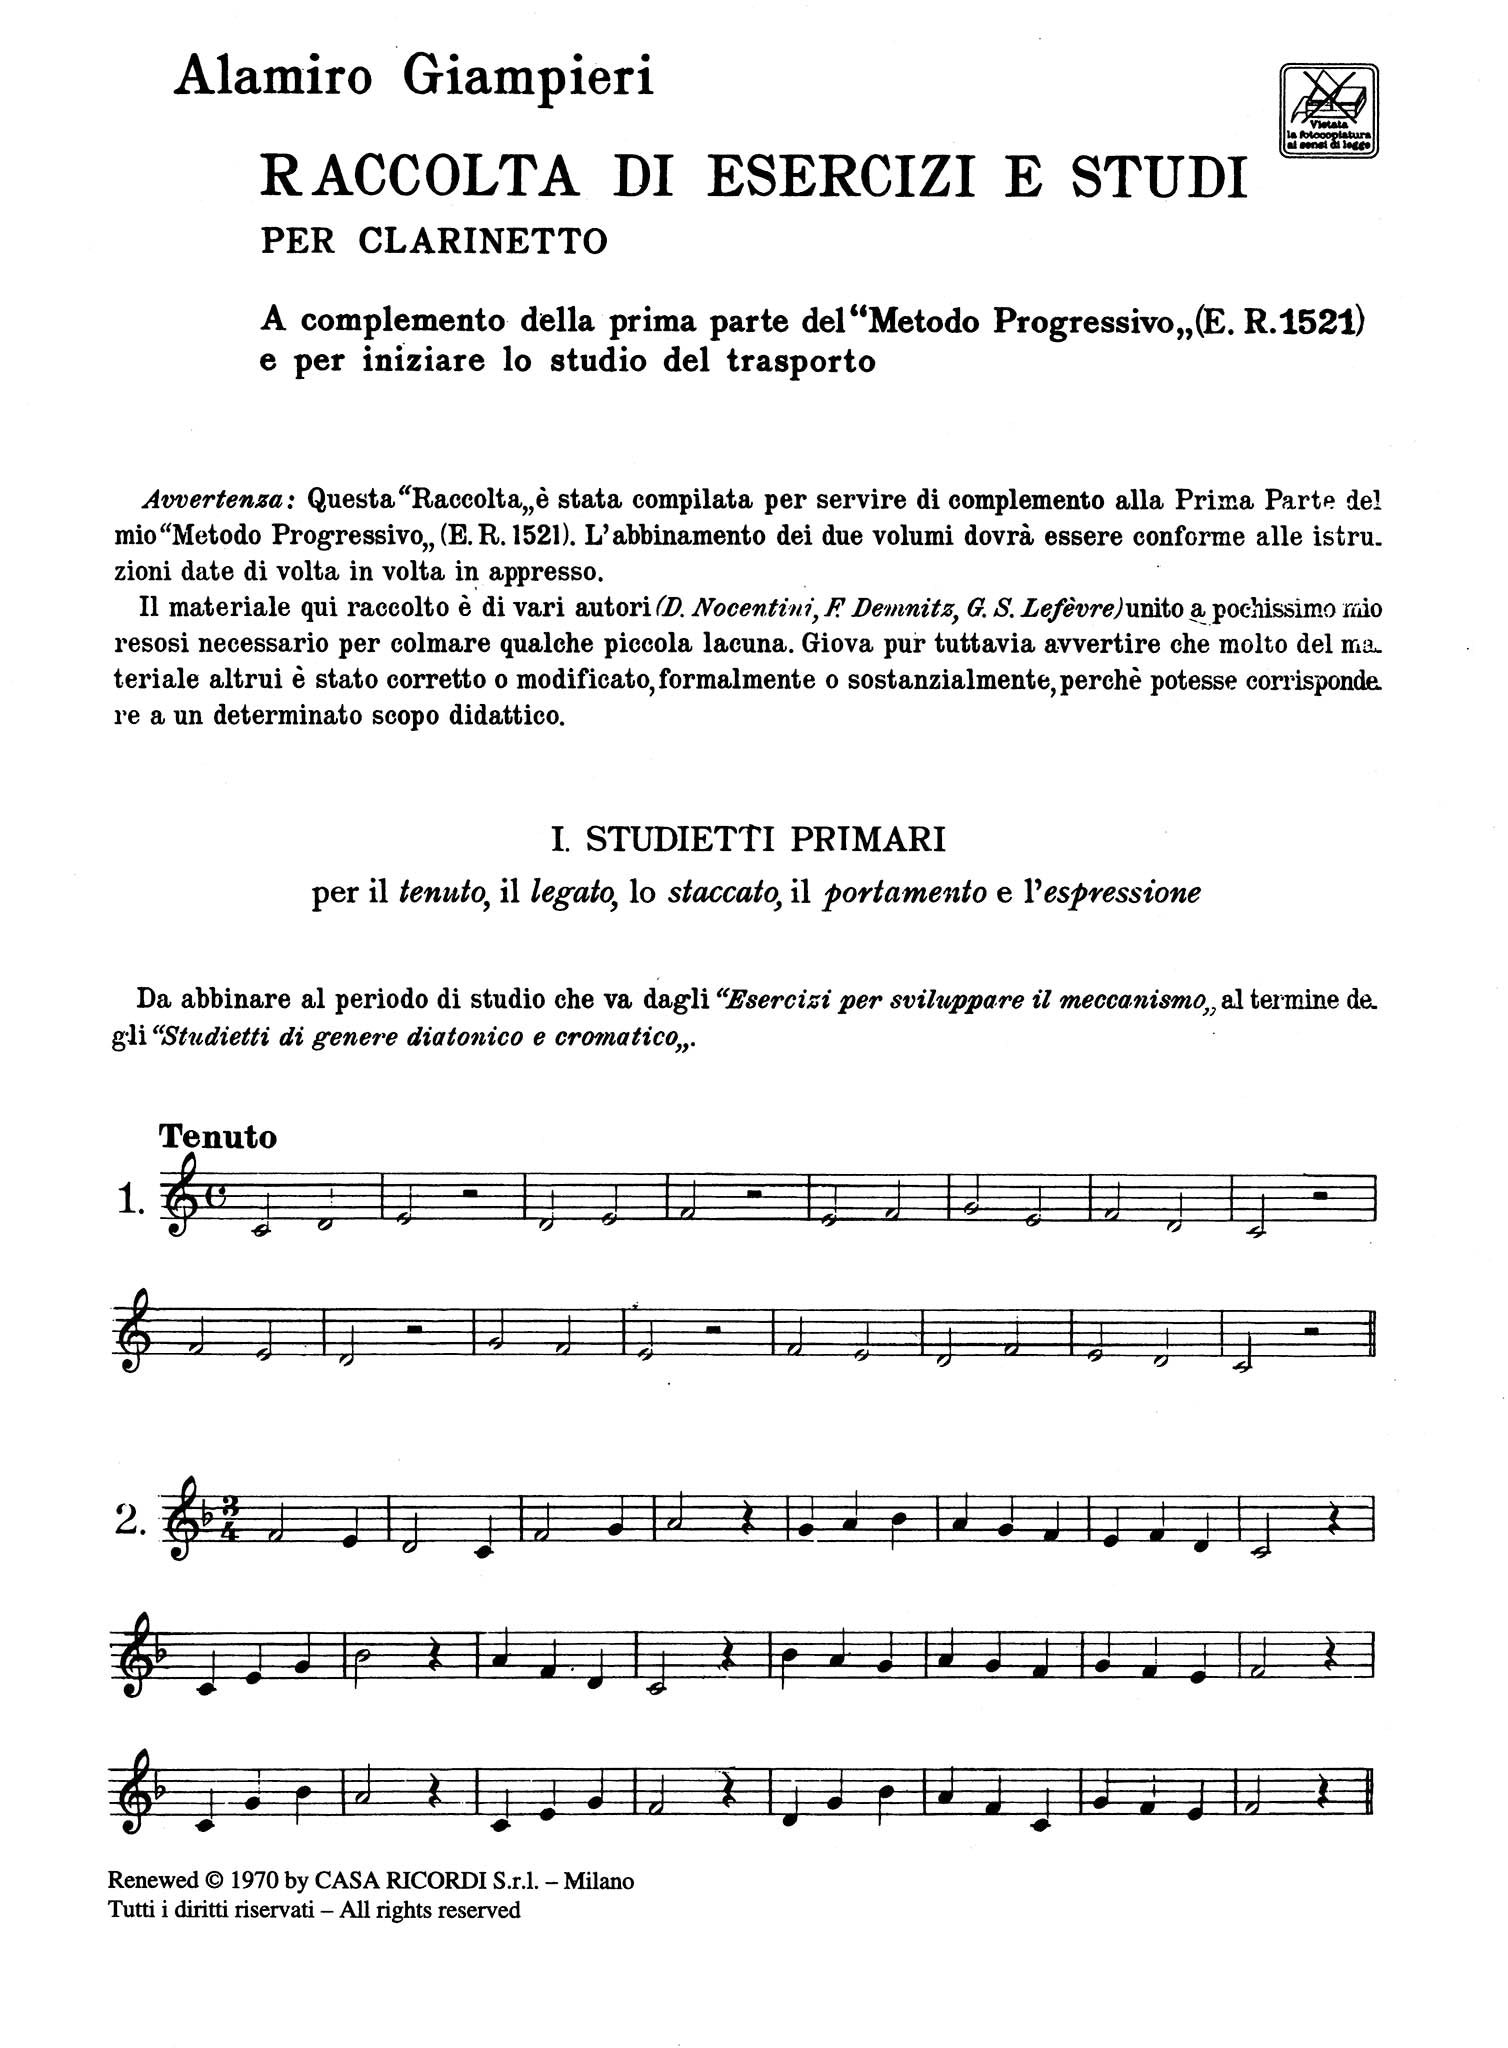 Selection of Exercises and Studies for Clarinet - Page 1